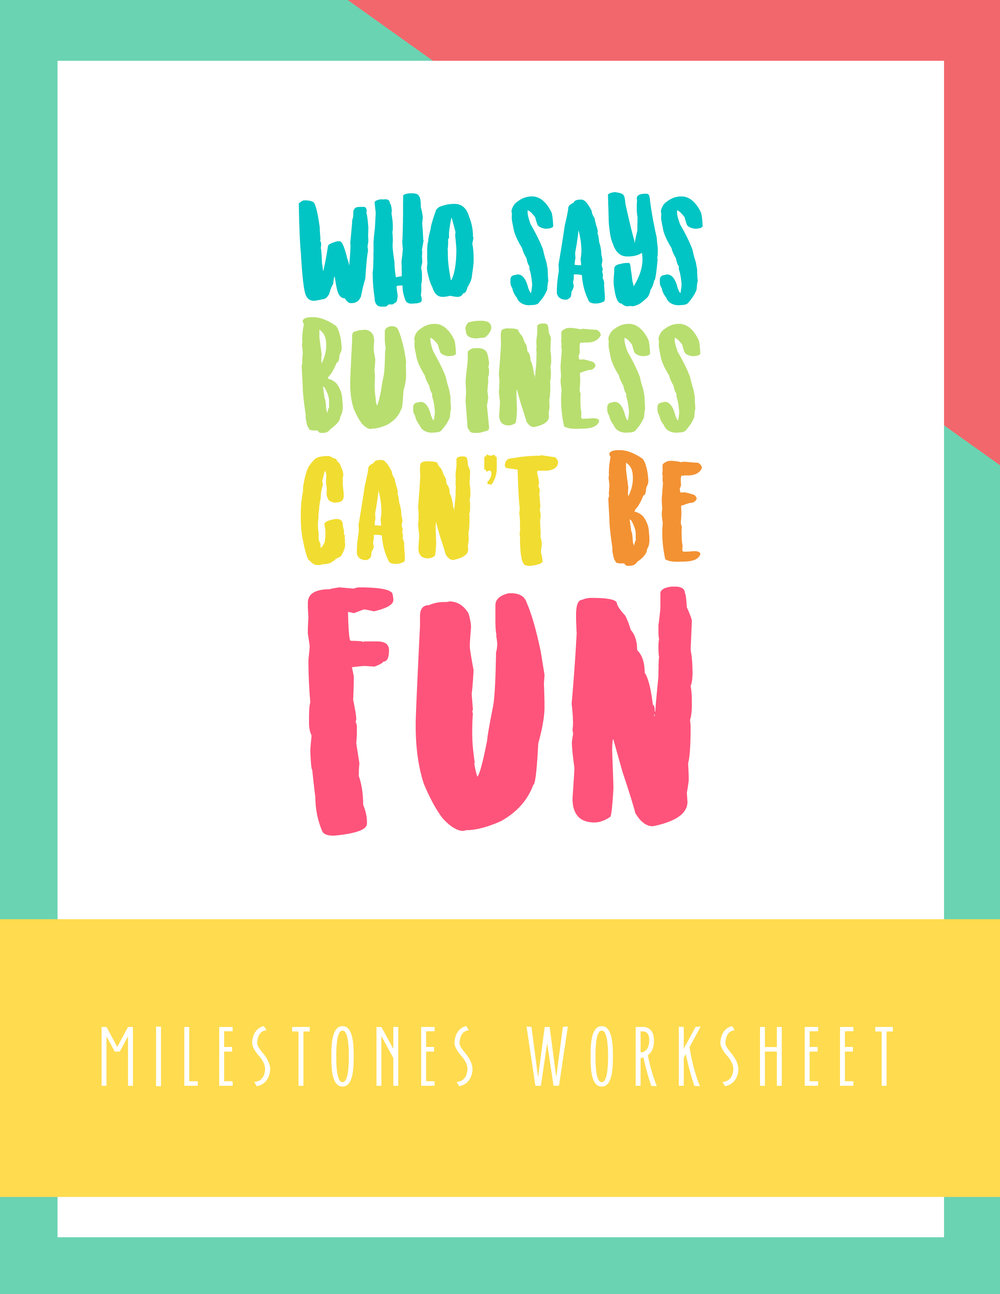 Bold & Pop Freebies : Who Says Business Can't be Fun Milestones Worksheet